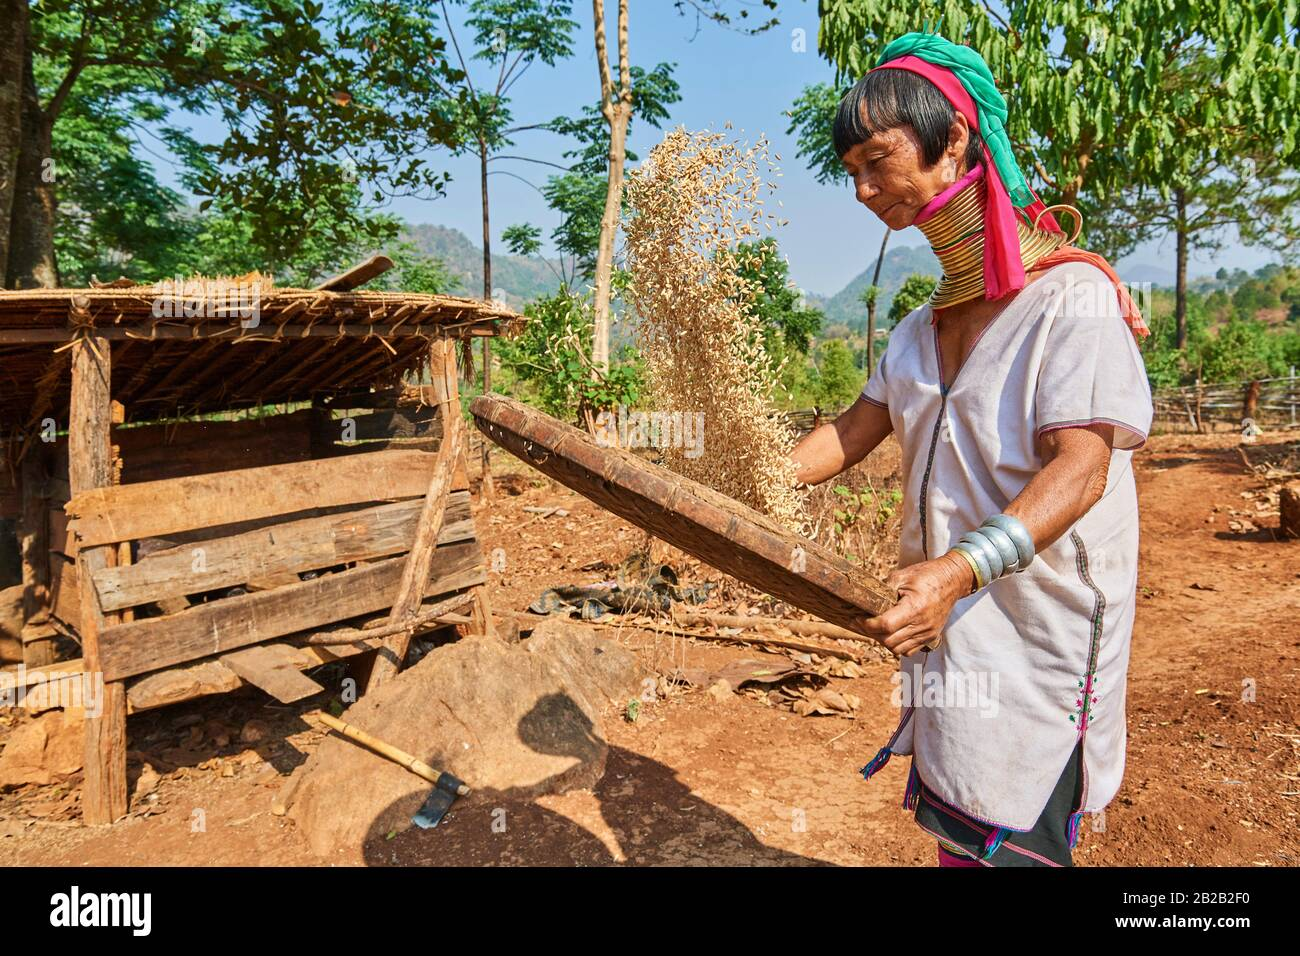 Kayan Lahwi woman with brass neck coils and traditional clothing sifting rice to get rid of the loose husks in a flat basket. The Long Neck Kayan Stock Photo